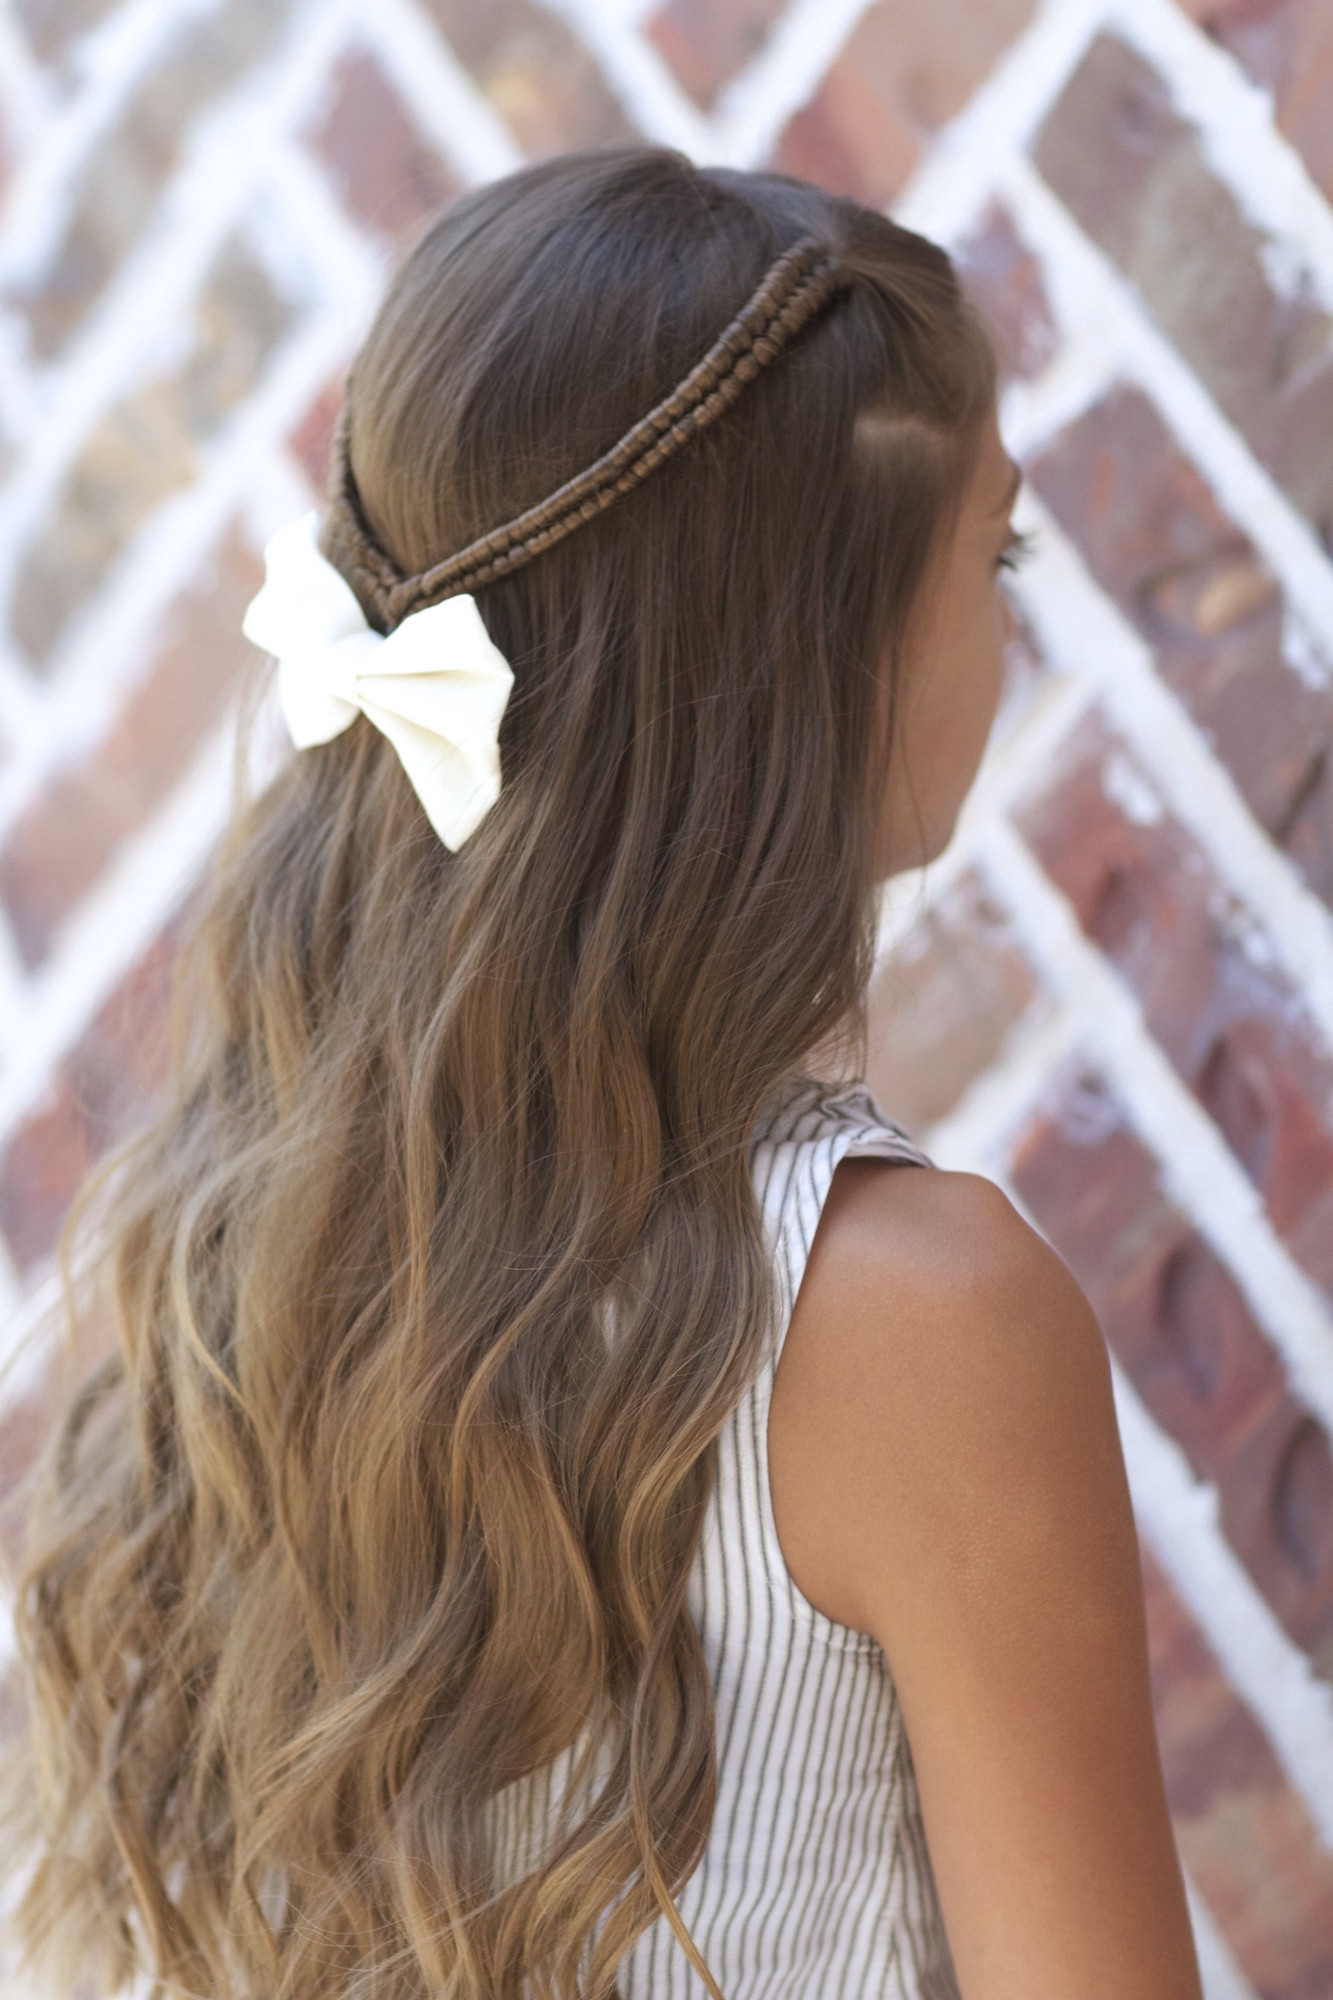 Best ideas about Pictures Of Cute Hairstyles . Save or Pin Infinity Braid Tieback Back to School Hairstyles Now.